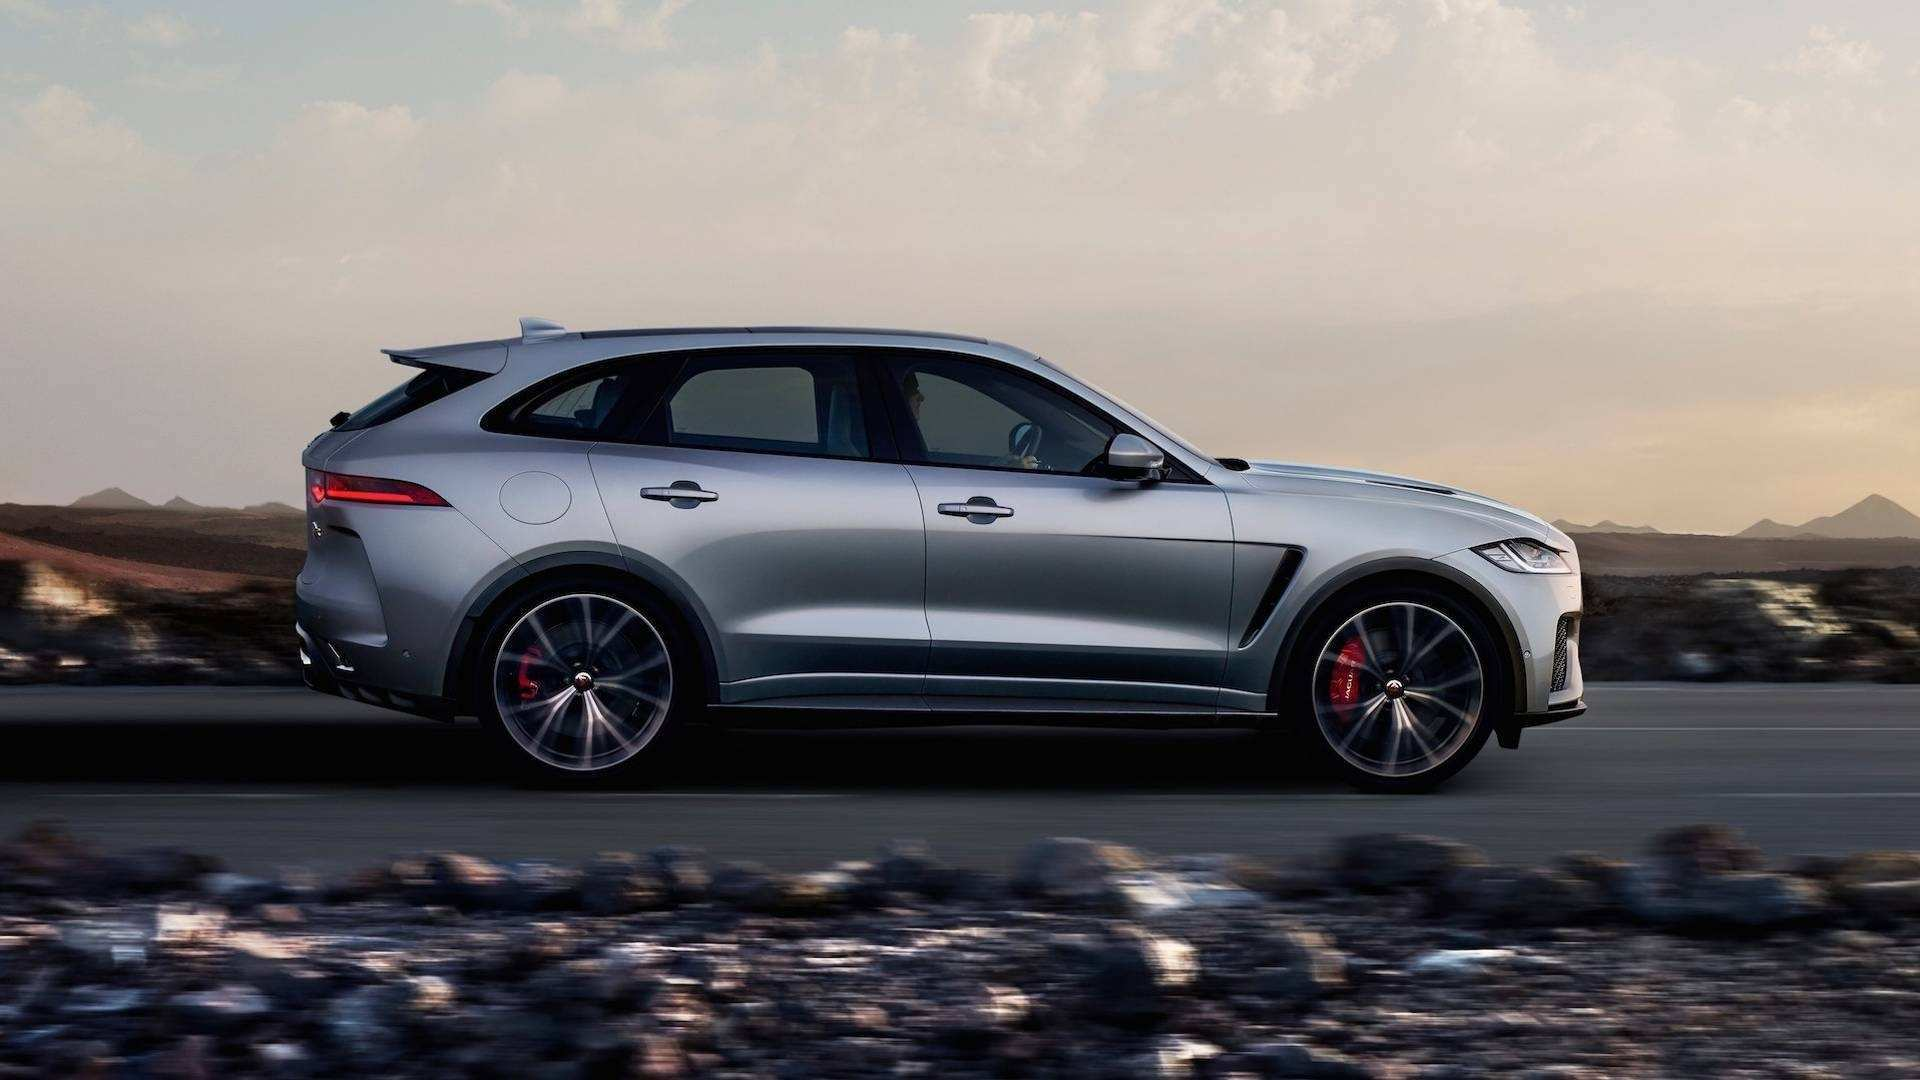 60 New 2020 Jaguar I Pace Release Date Release